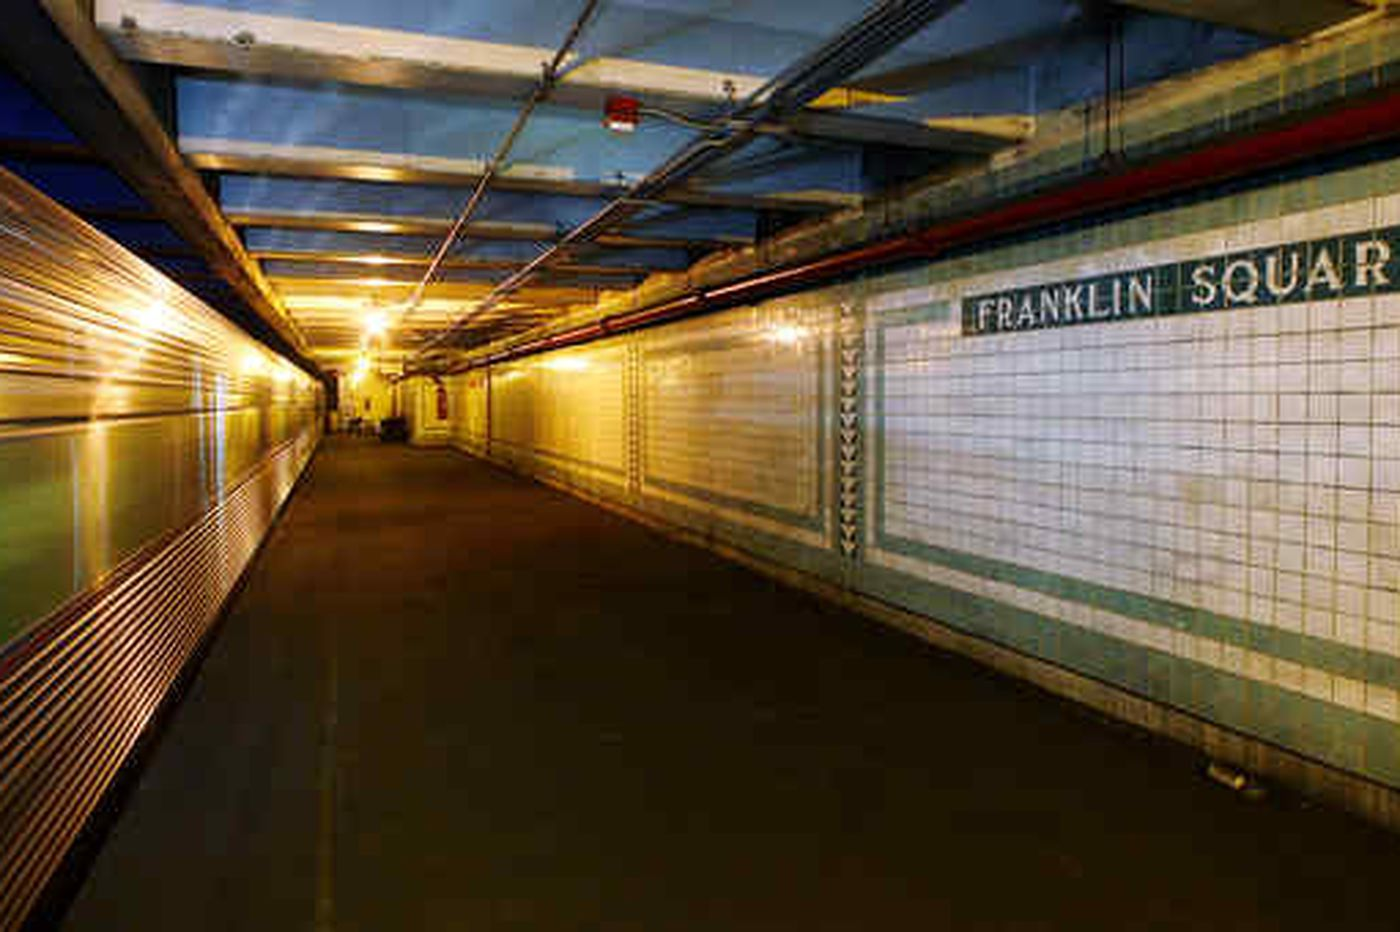 Commuters vs. the community: Should a PATCO station reopen at Franklin Square? | Pro/Con